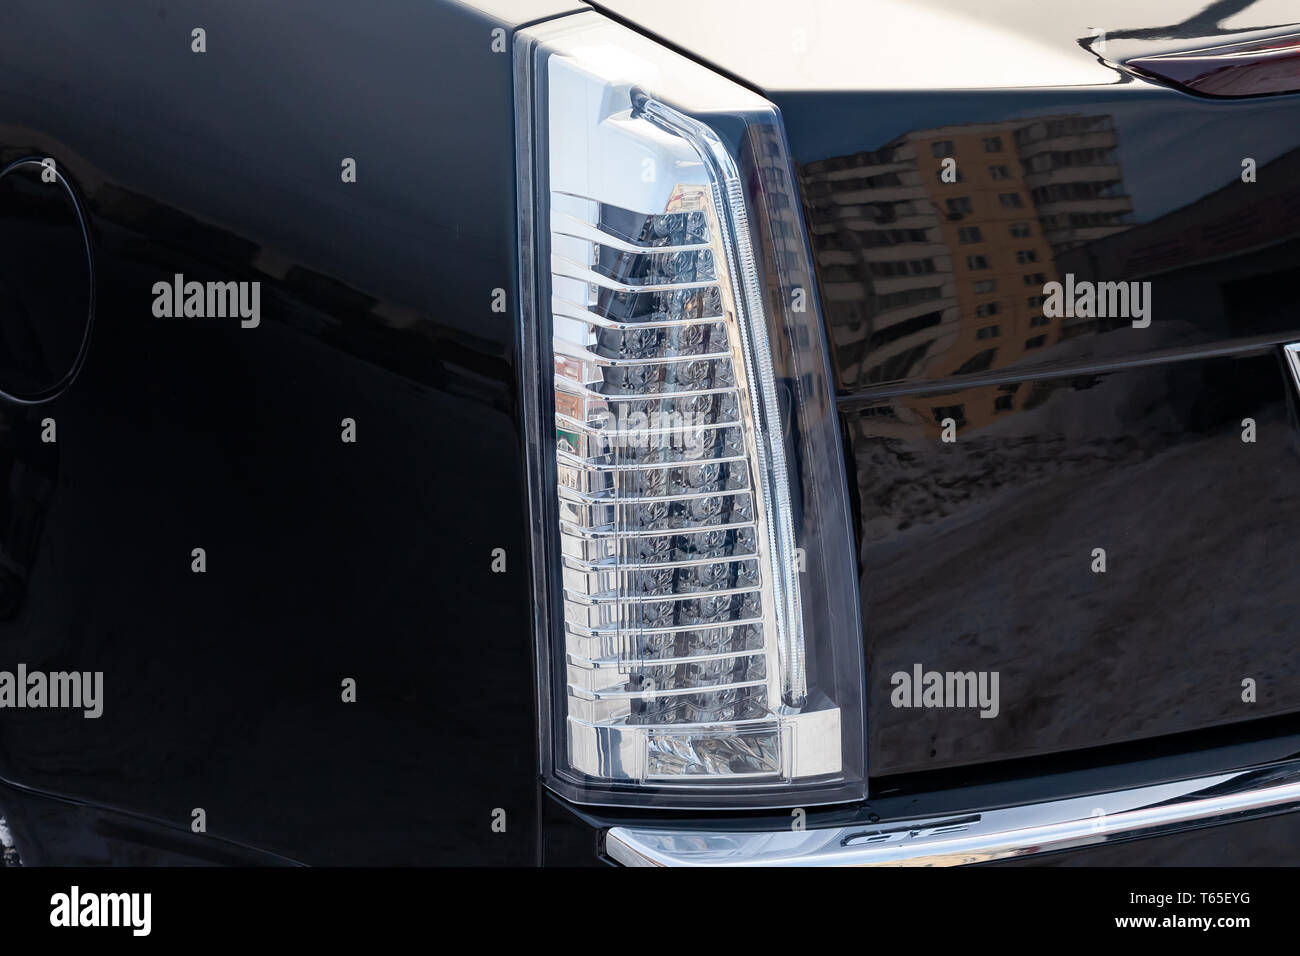 Close-up on the rear LED brake light of white color on a black car in the back of a suv after cleaning, polishing and detailing. Auto service industry - Stock Image